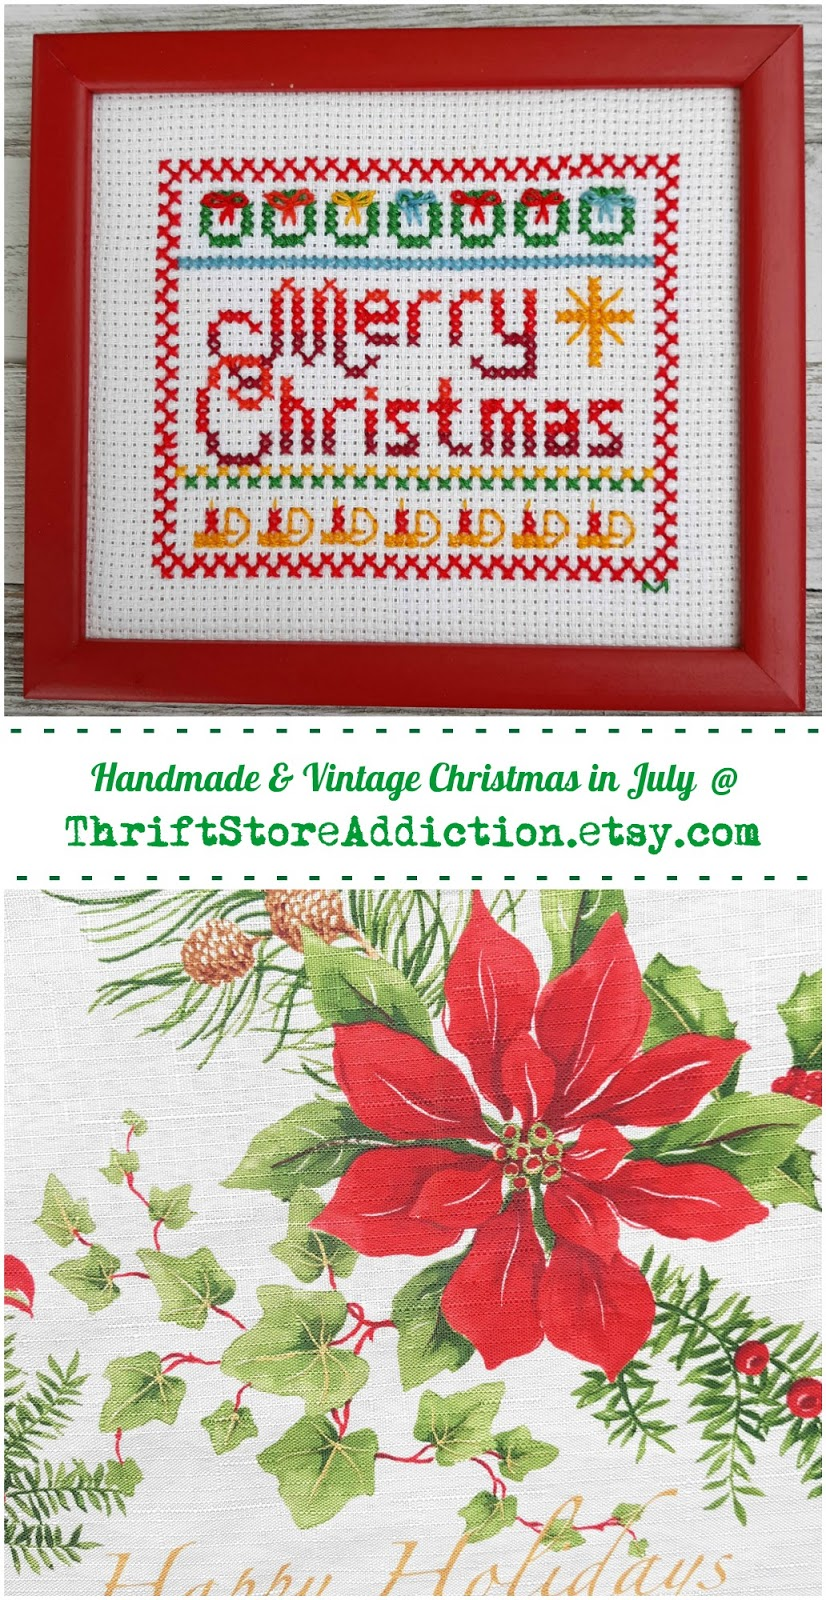 vintage and handmade Christmas in July